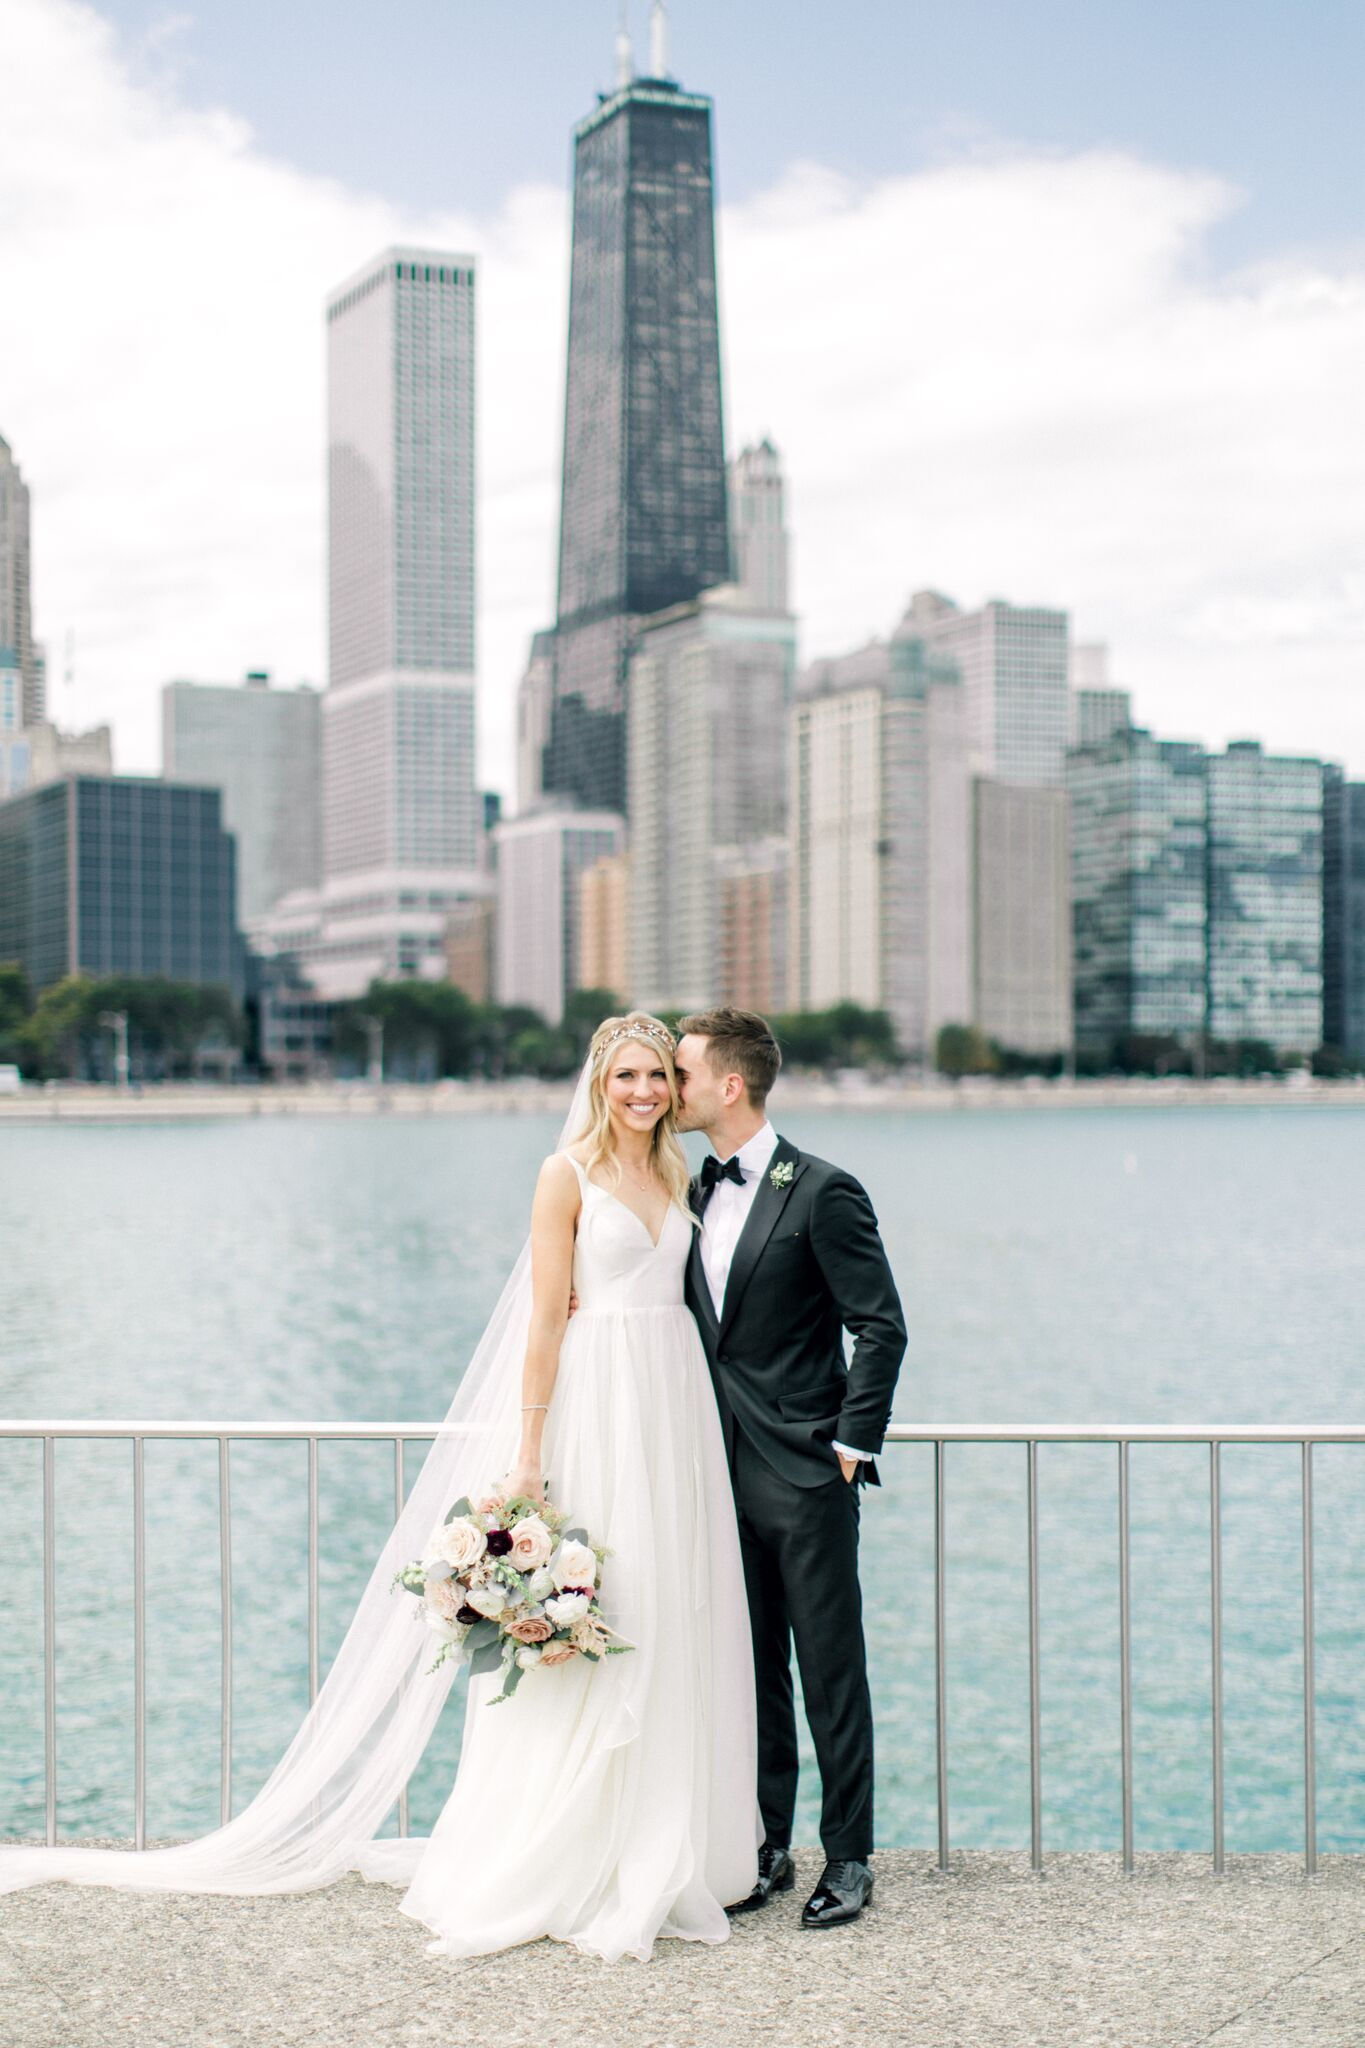 Bride Groom First Looks At Chicago Wedding At Morgan Manufacturing In Chicago Illinois Brought To Life By Ph Storybook Wedding Chicago Wedding City Wedding